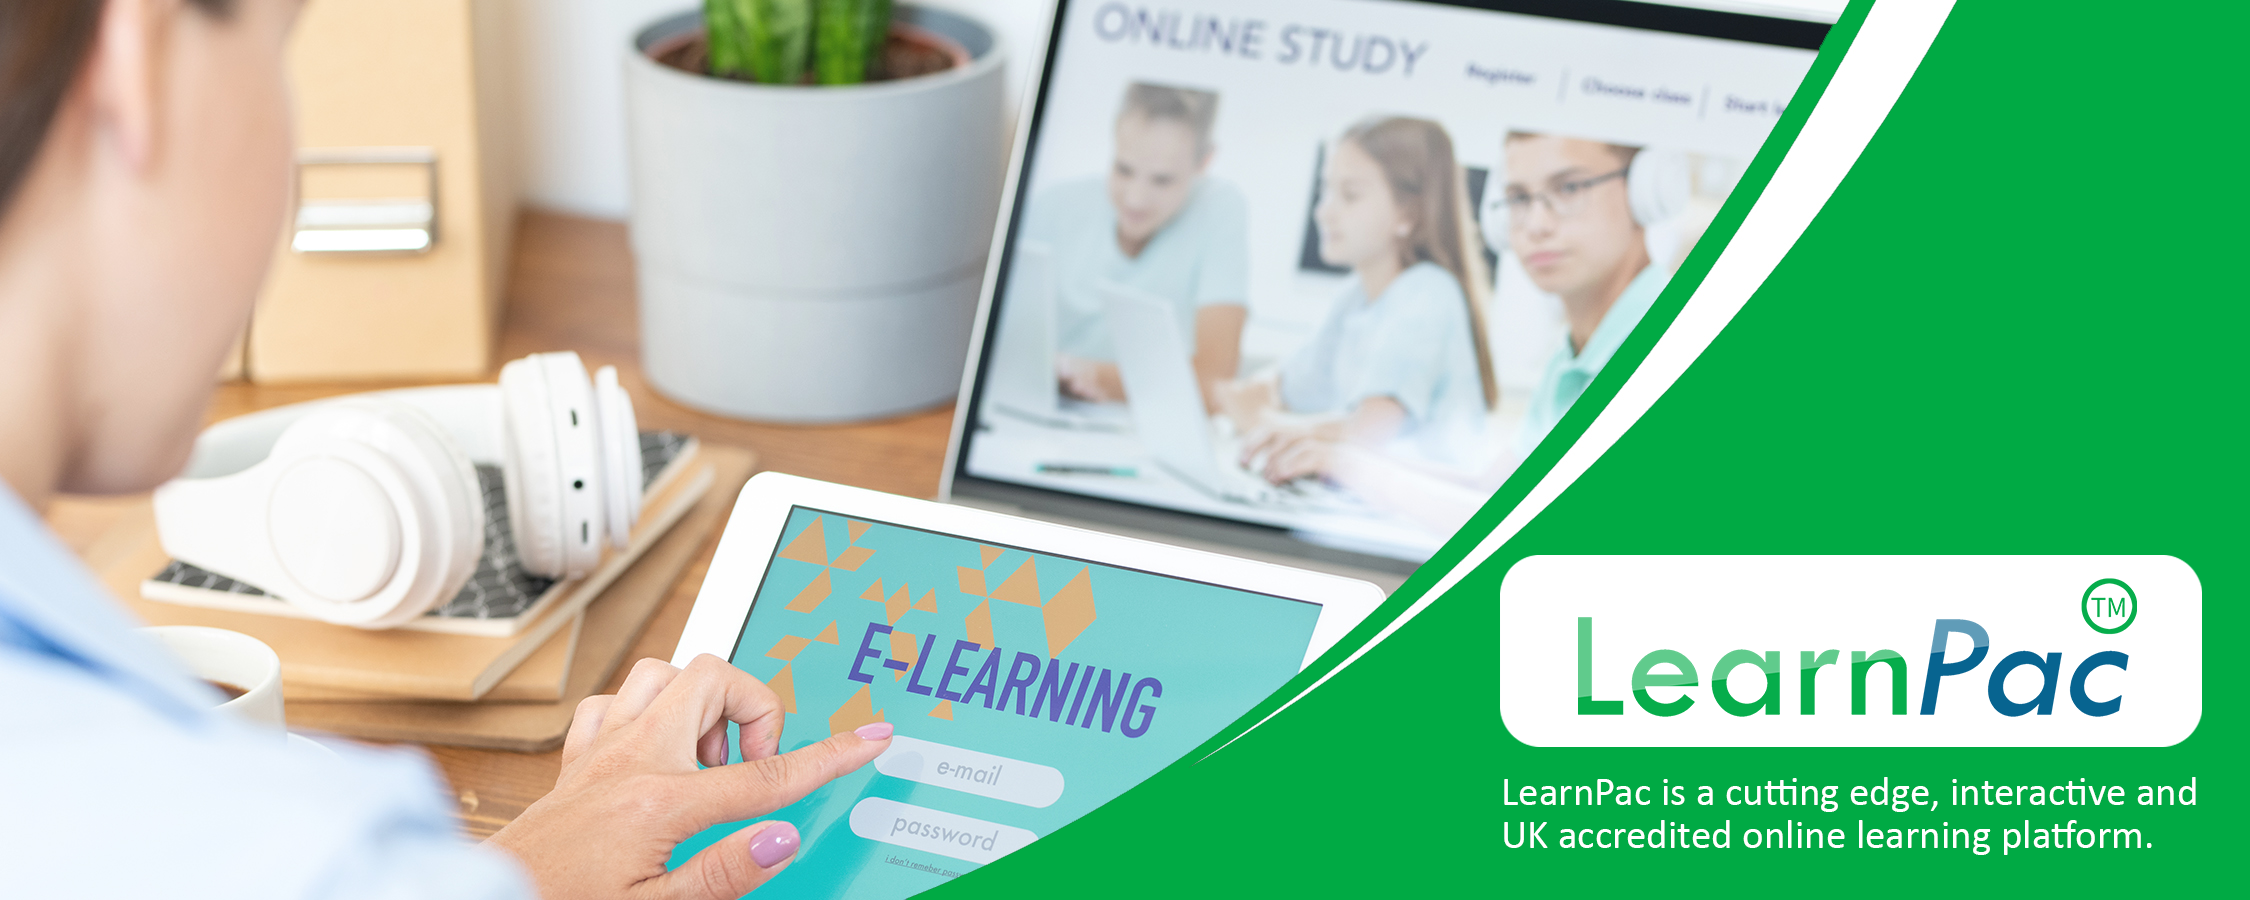 Asthma Awareness - Online Learning Courses - E-Learning Courses - LearnPac Systems UK --